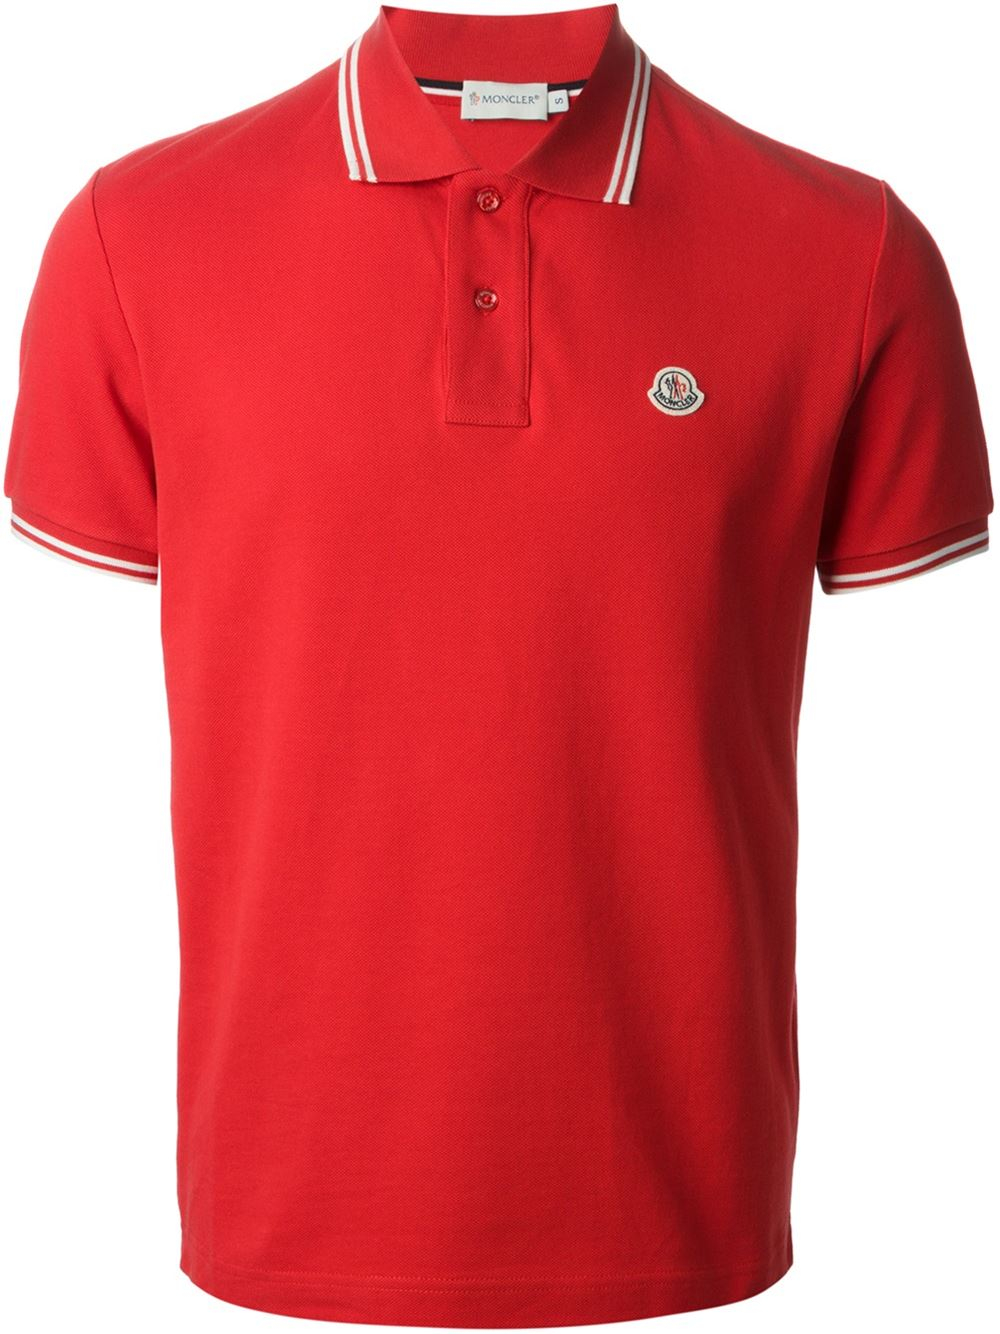 Moncler striped trim polo shirt in red for men lyst for Red white striped polo shirt